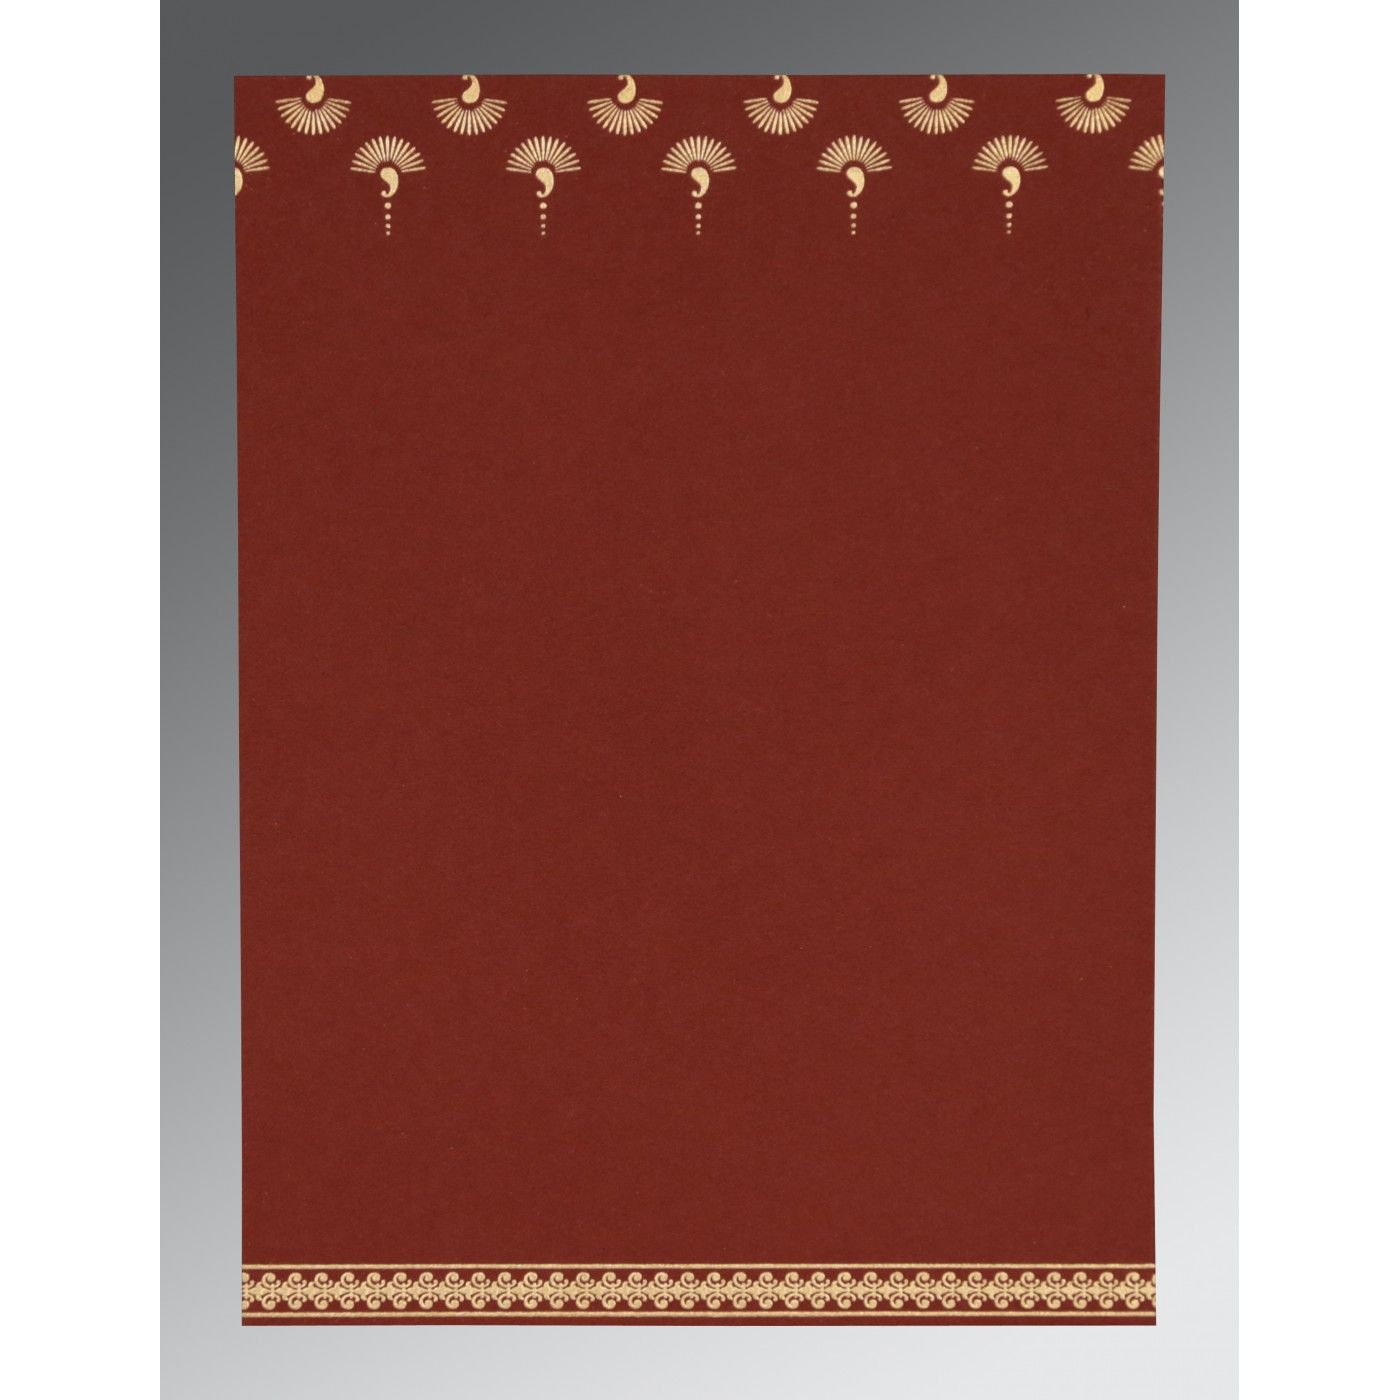 MAROON MATTE SCREEN PRINTED WEDDING INVITATION : CSO-8247D - IndianWeddingCards